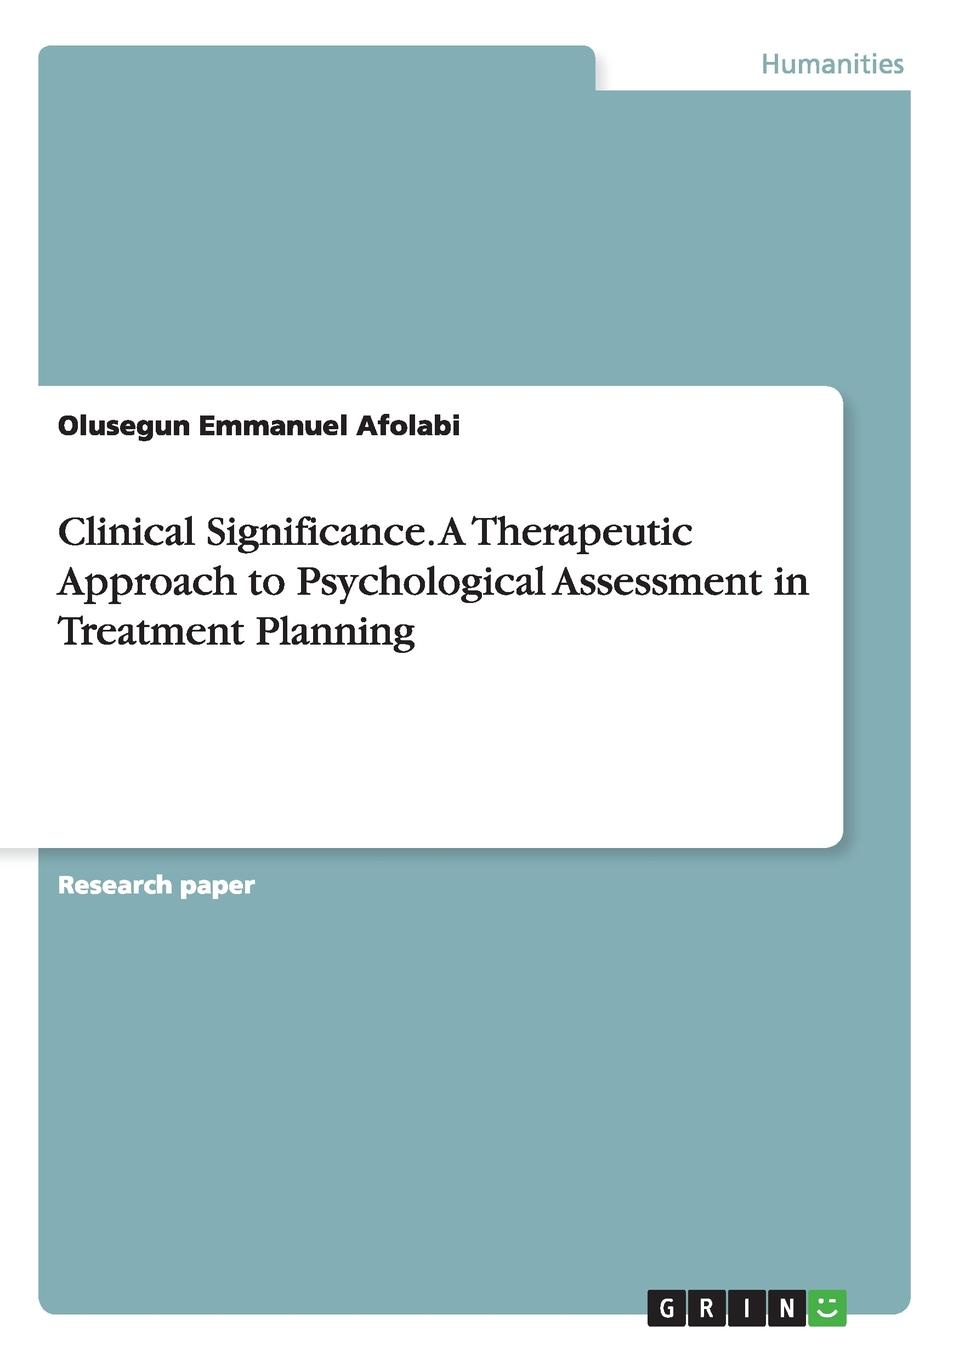 Olusegun Emmanuel Afolabi Clinical Significance. A Therapeutic Approach to Psychological Assessment in Treatment Planning helen chapel essentials of clinical immunology